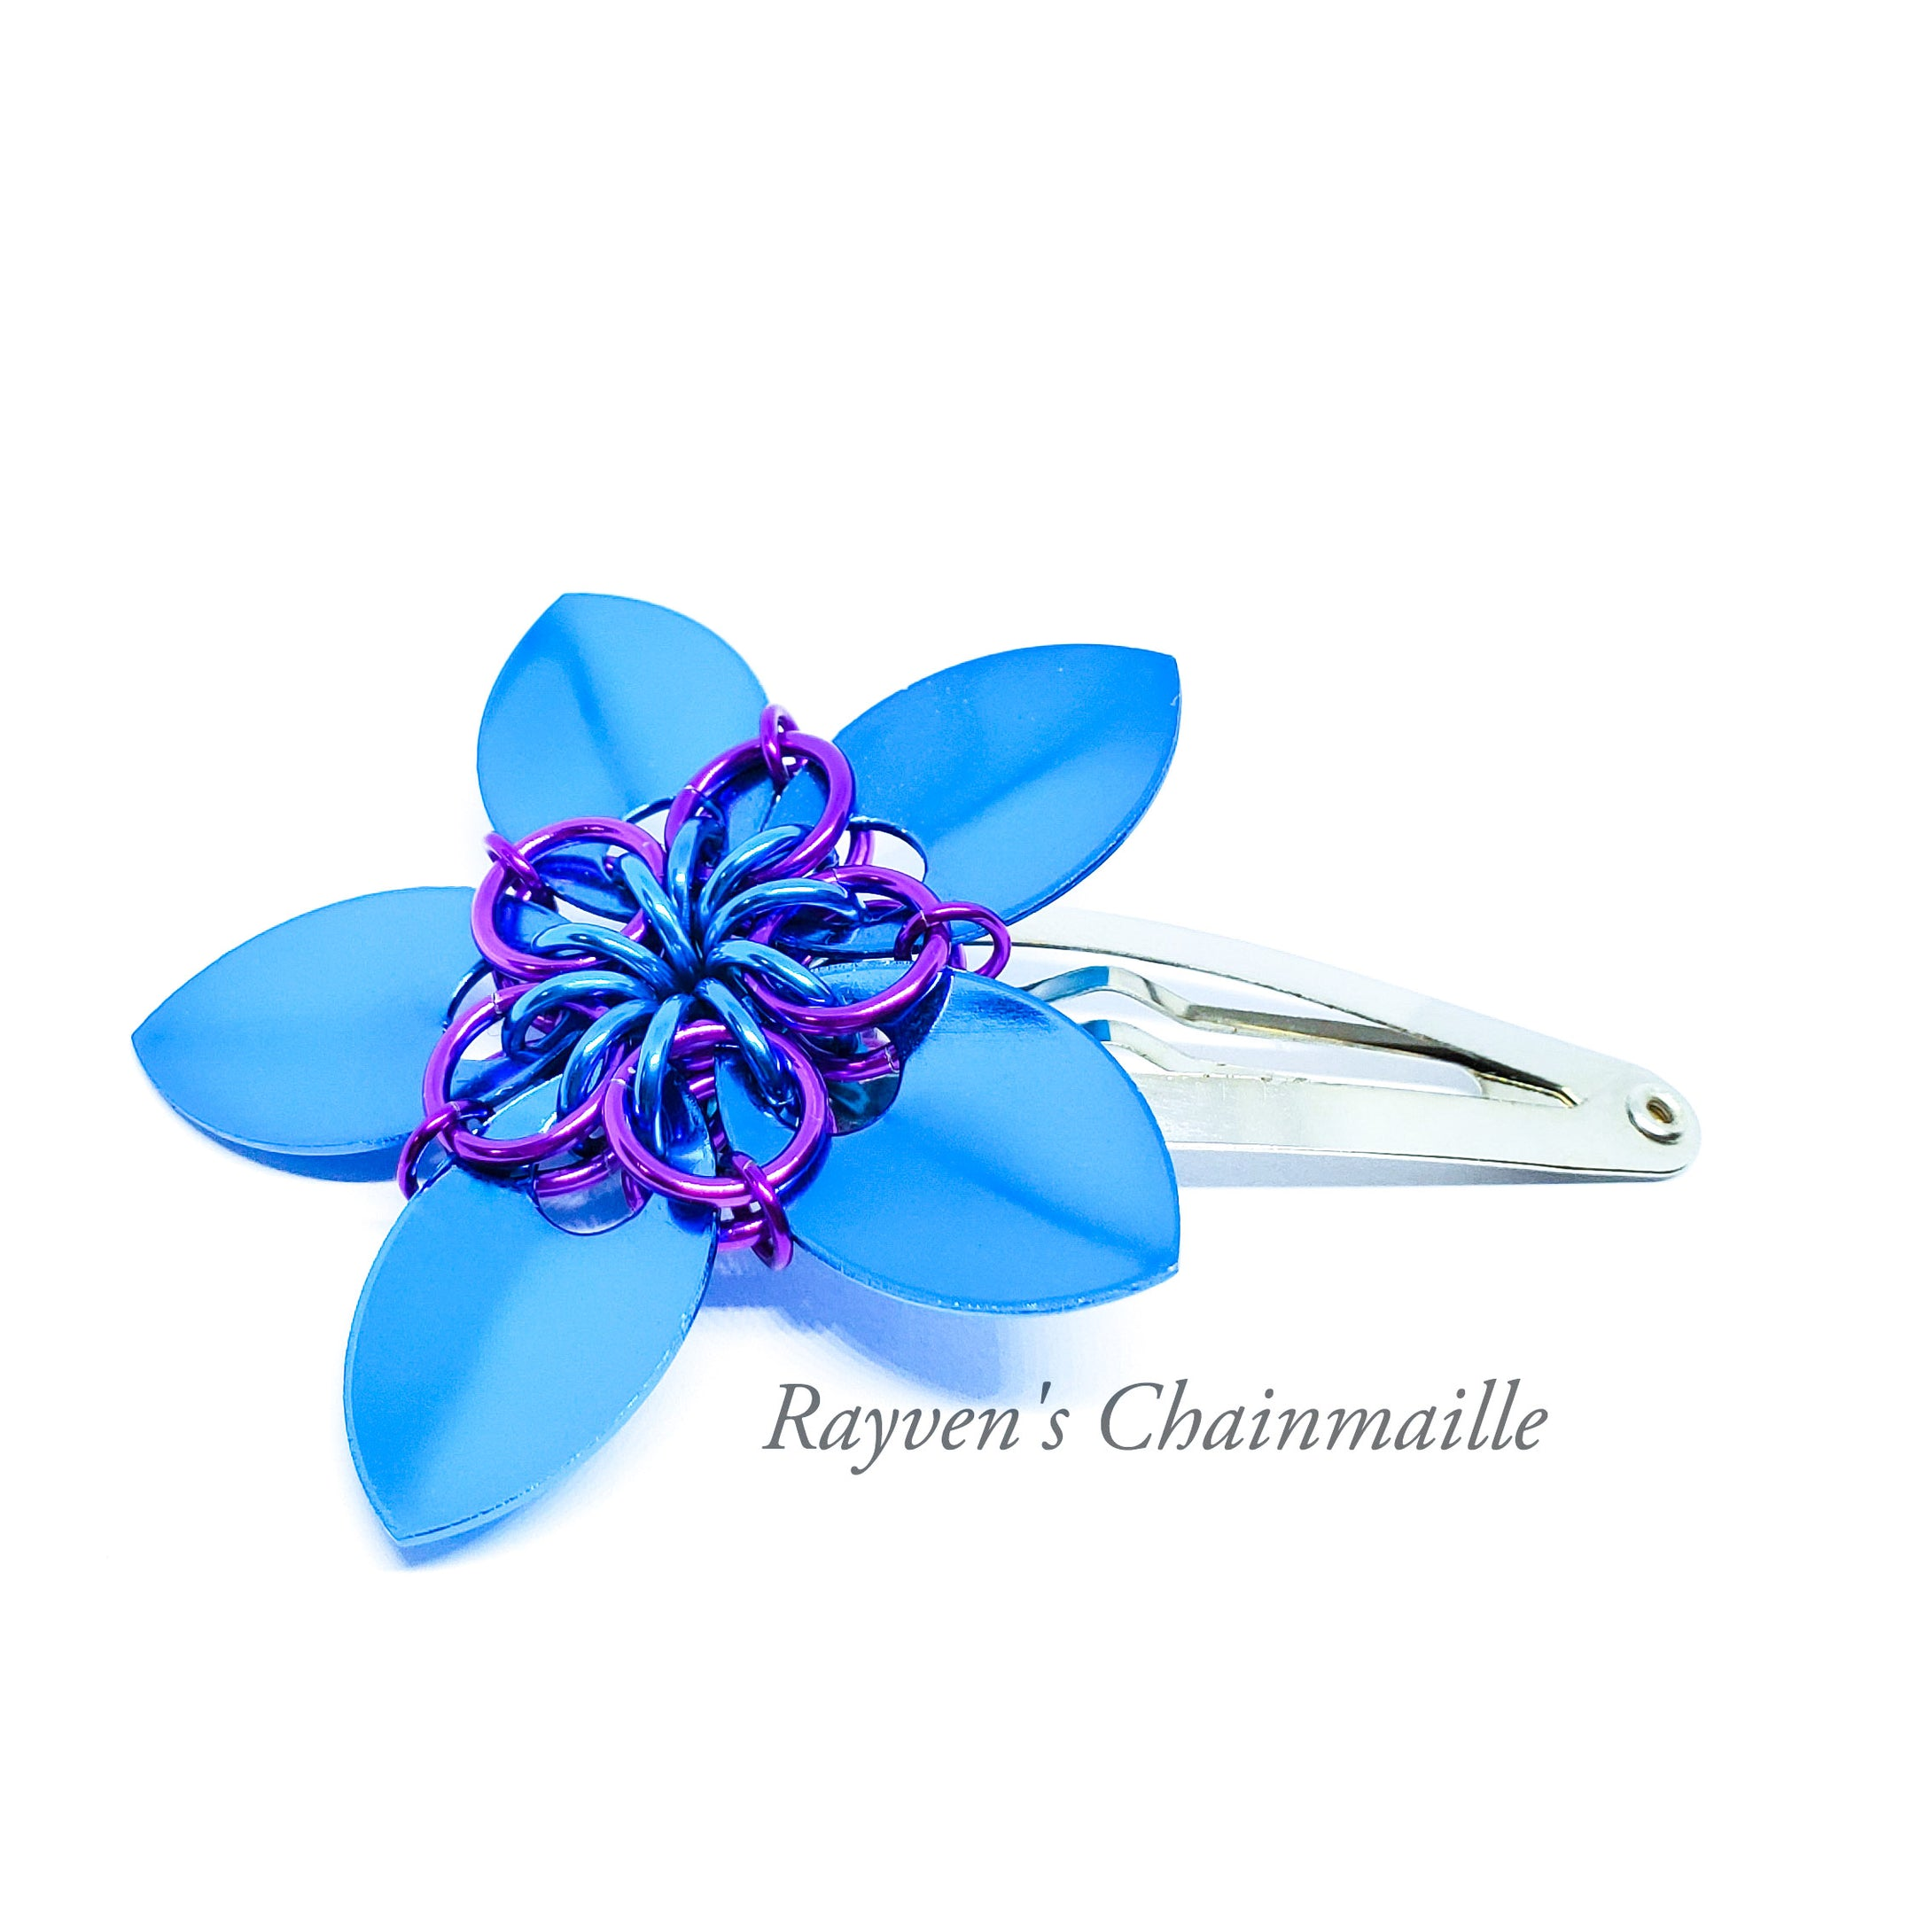 Rayven's Chainmaille - Turquoise and Violet Scalemaille Flower Hair Clips